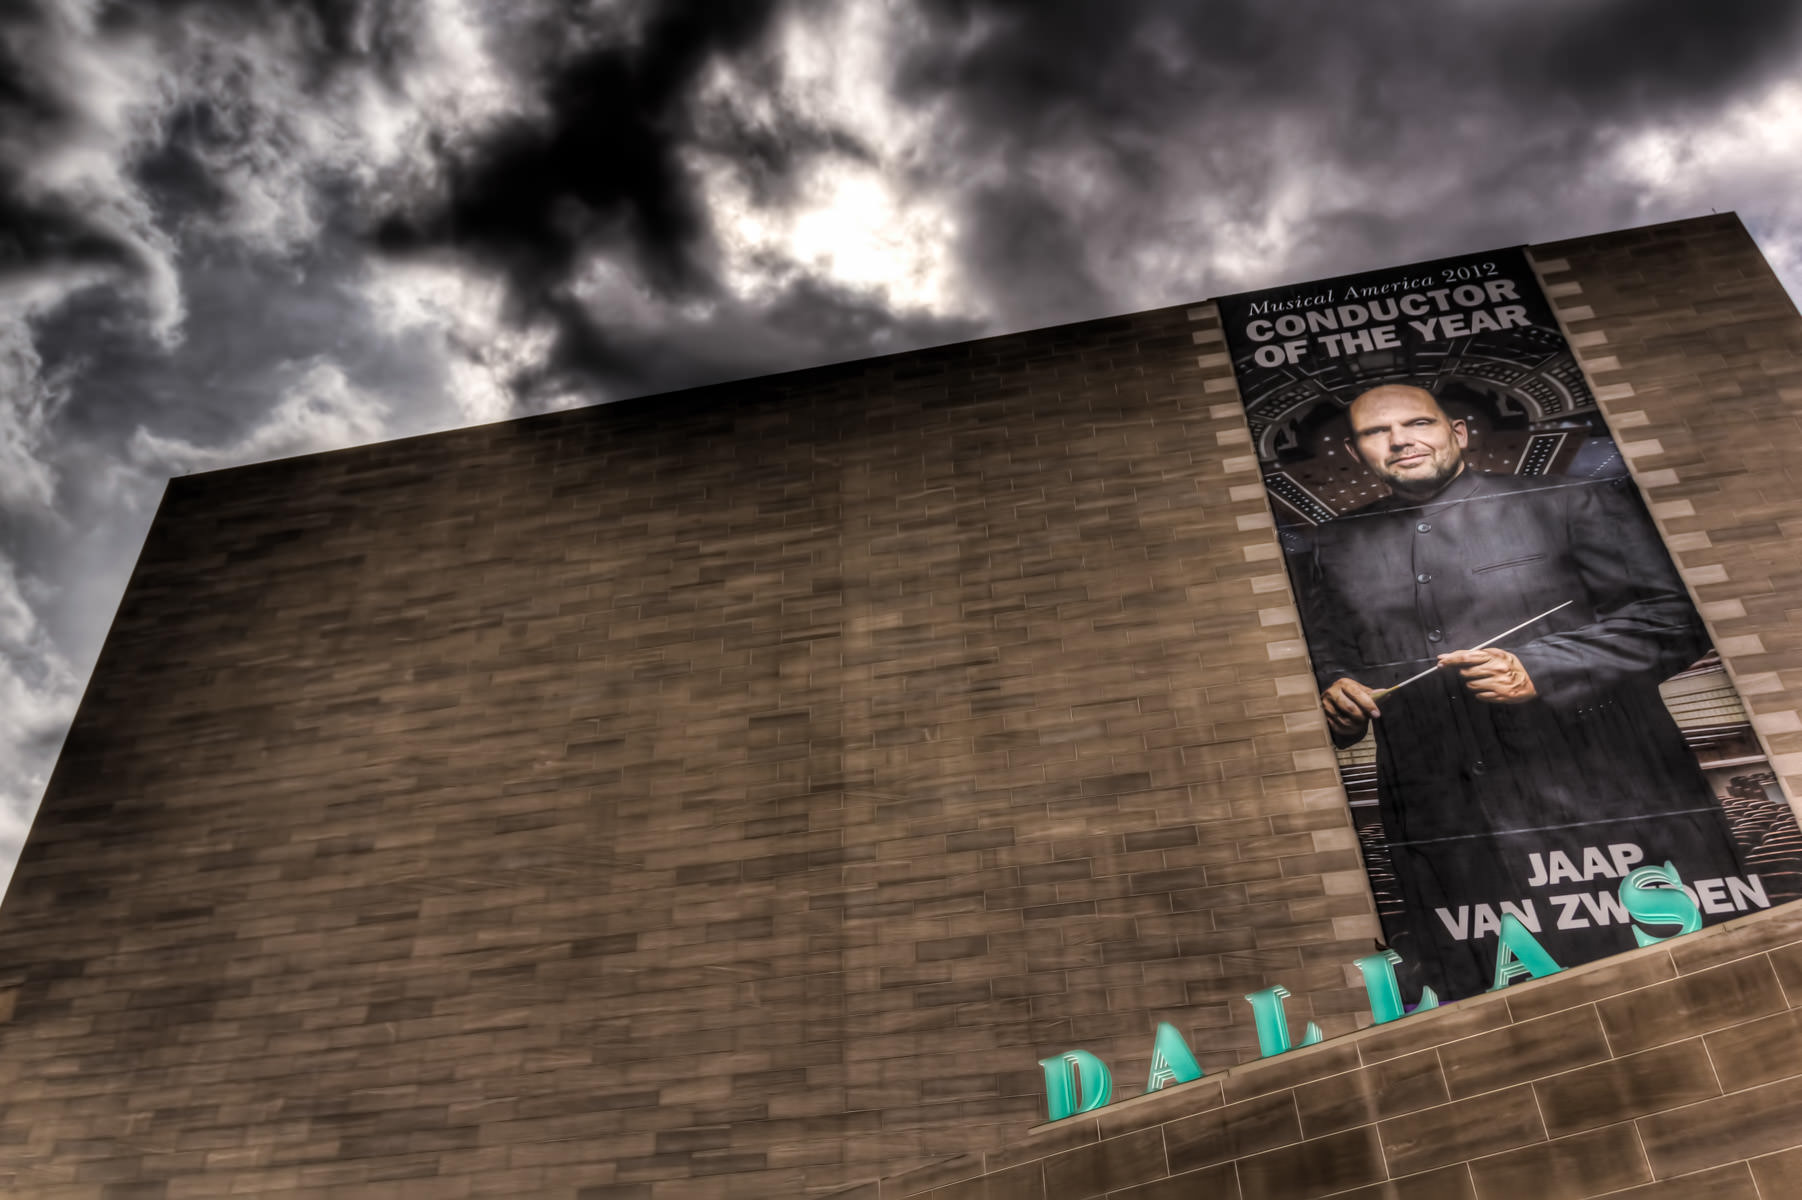 A banner featuring the Dallas Symphony Orchestra's conductor, Jaap Van Zweden, on the exterior of the I.M. Pei-designed Meyerson Symphony Center.